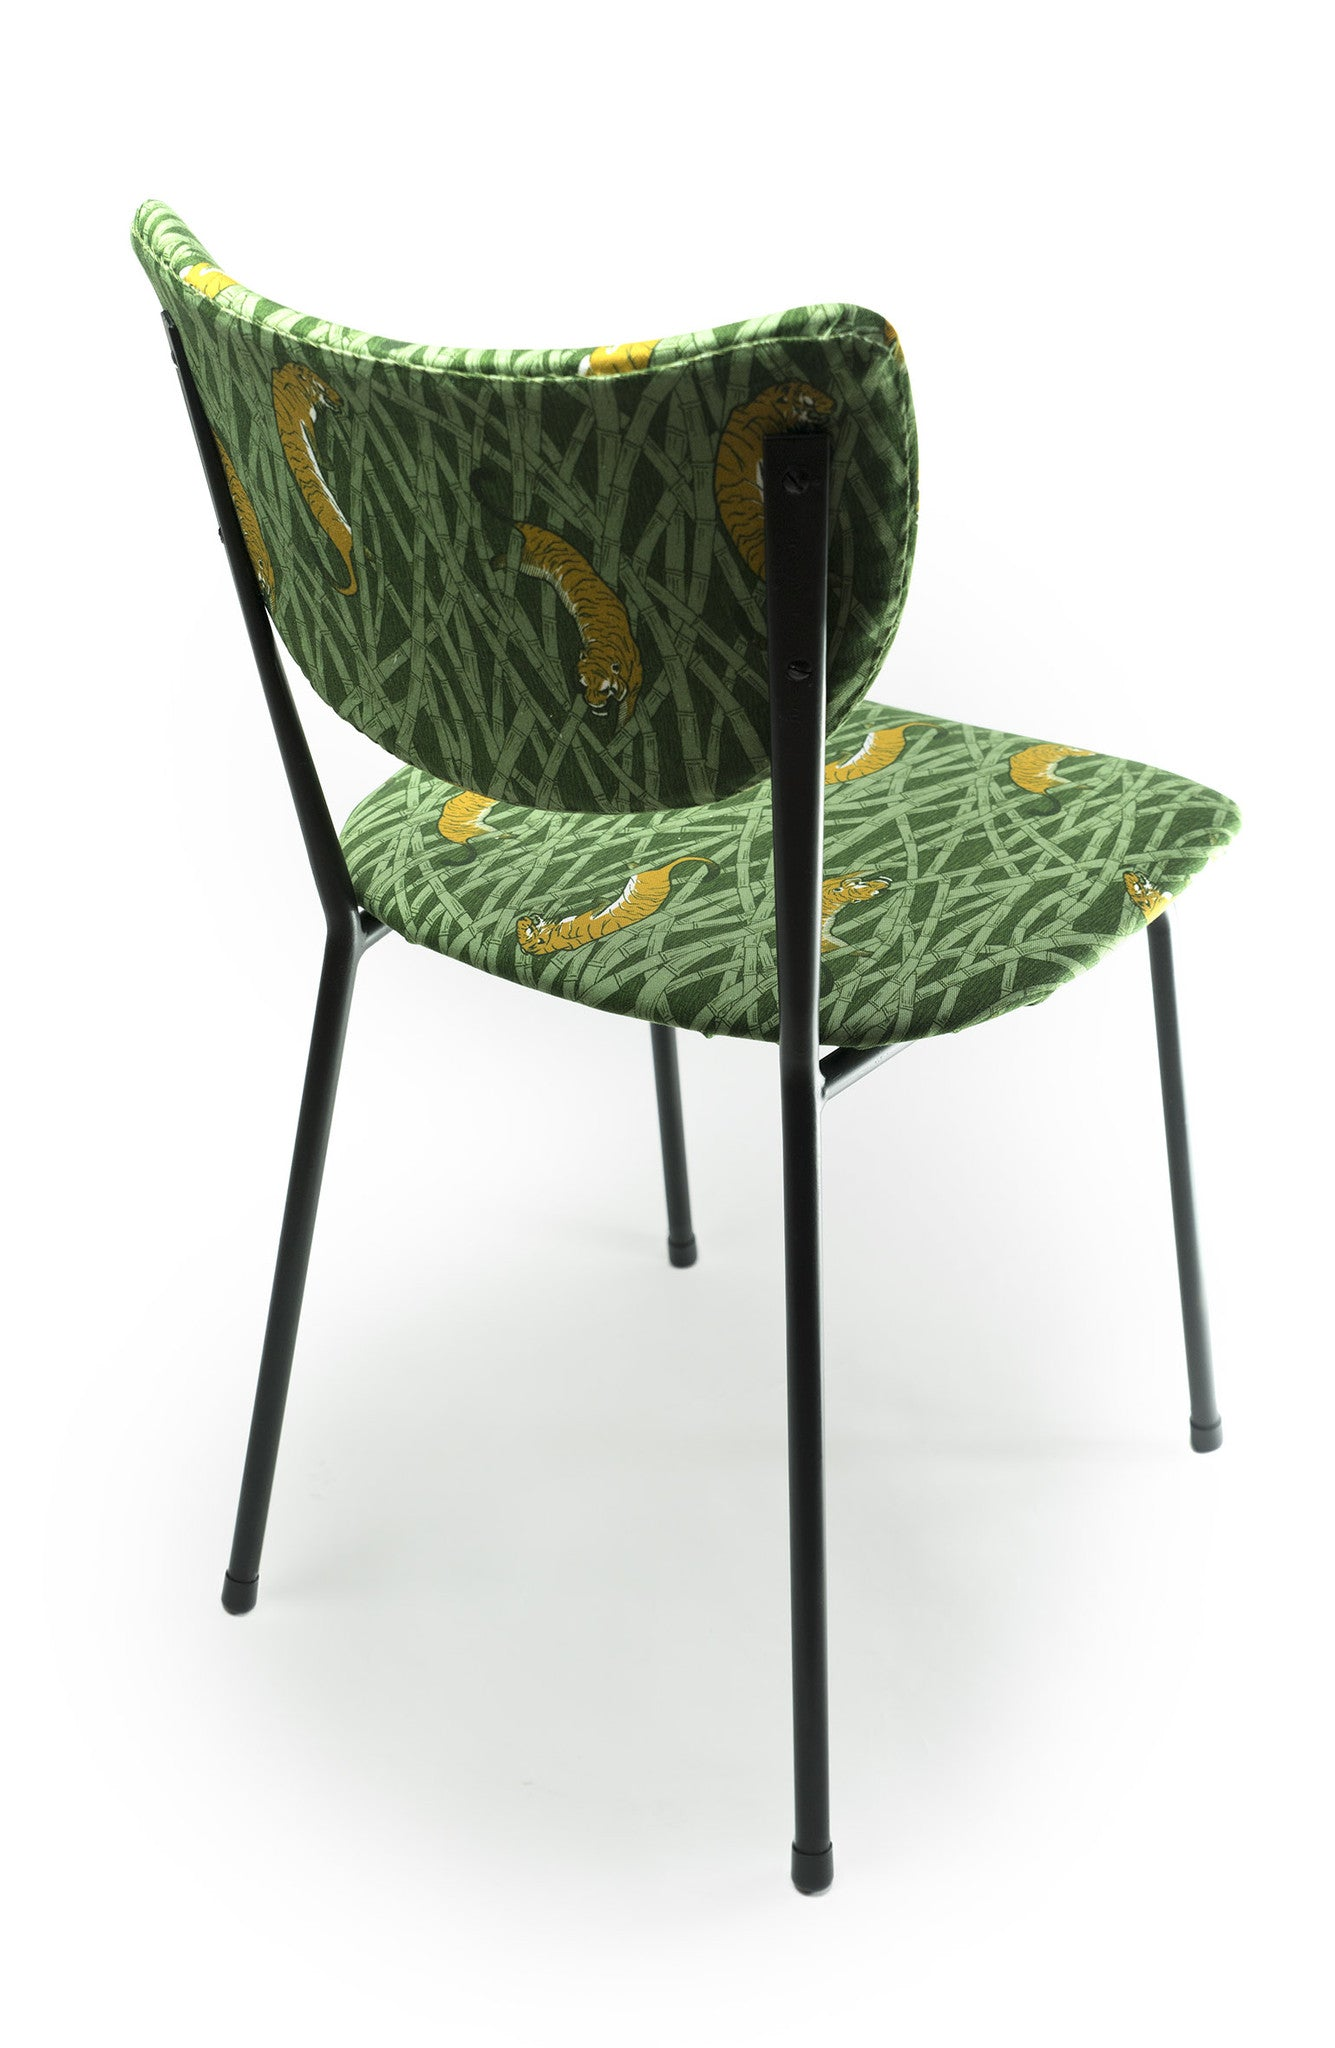 CHAIR - TIGERS green